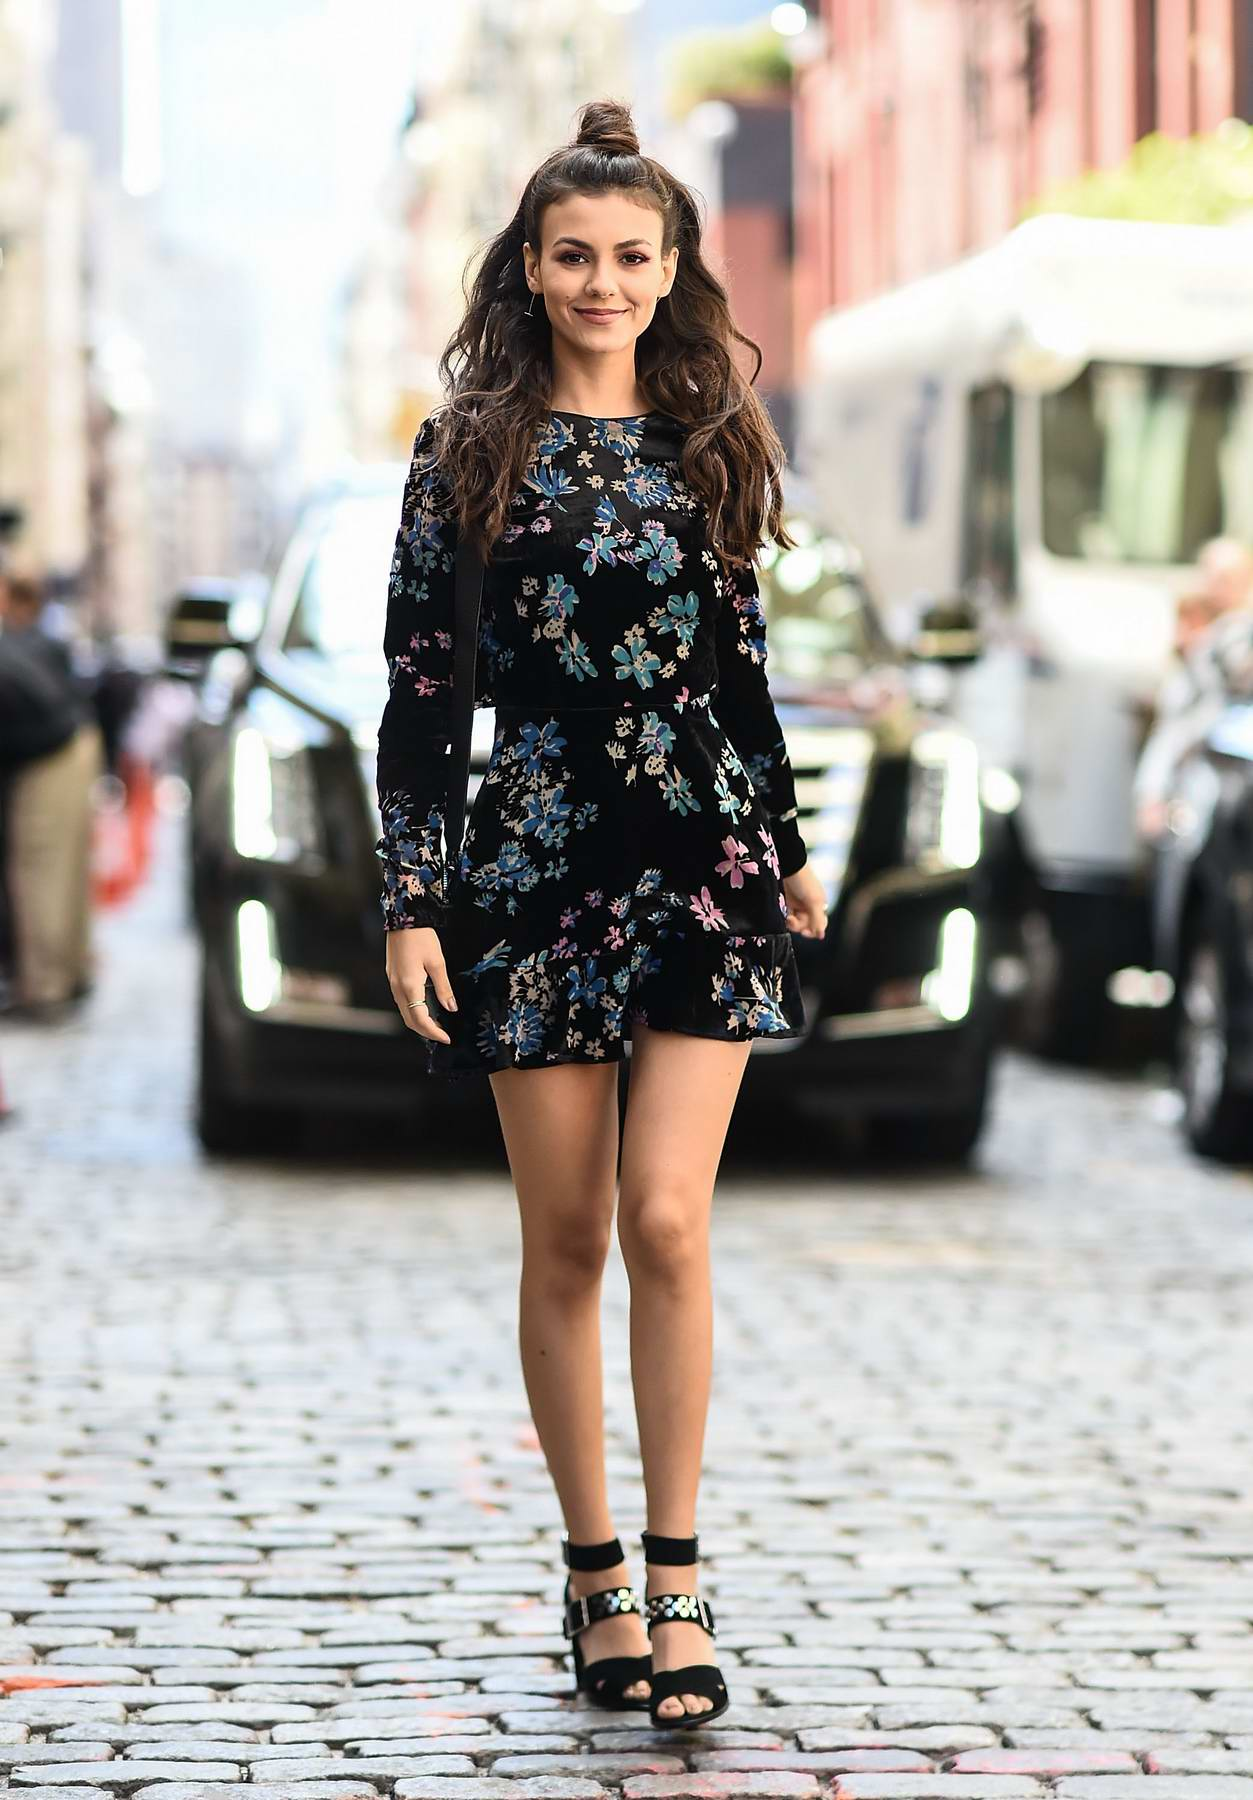 Victoria Justice wearing a Rebecca Minkoff dress and shoes outside the Rebecca Minkoff show in New York